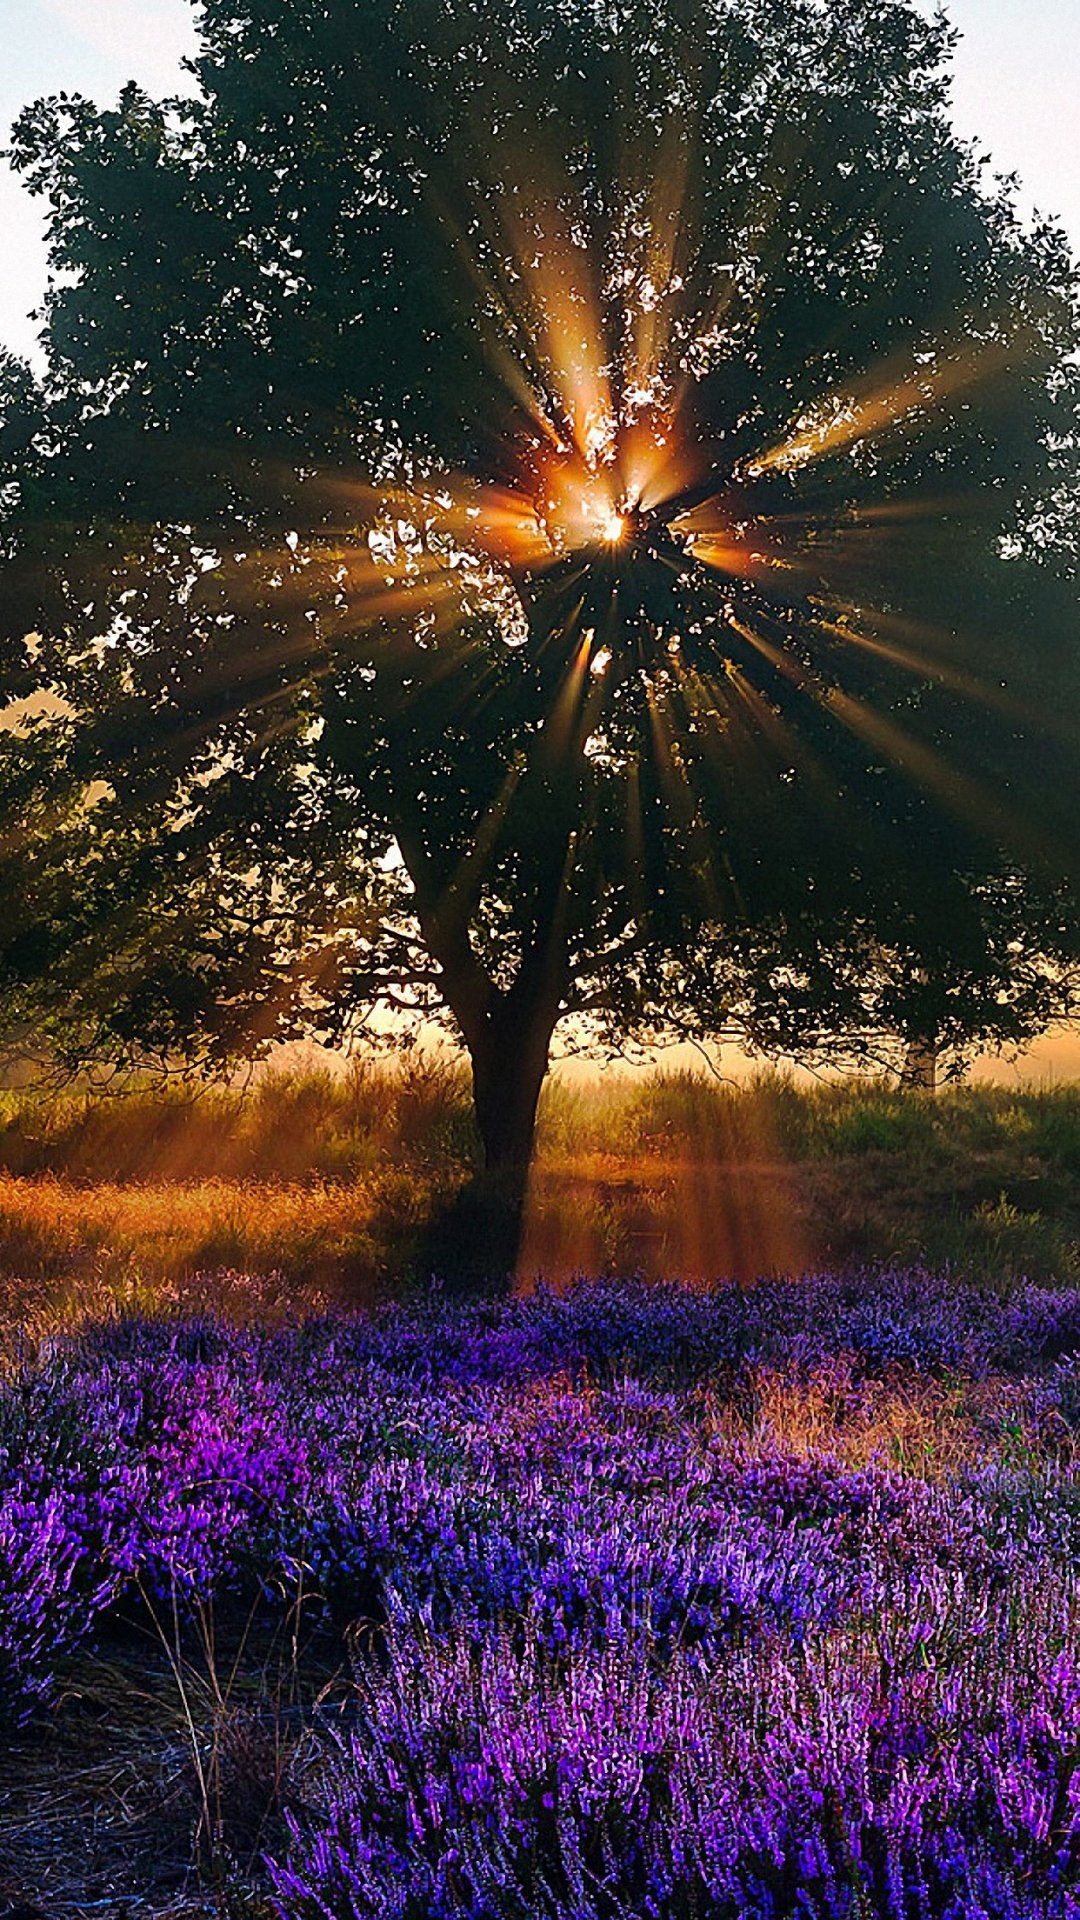 Nature Morning Sunshine Iphone 6 Wallpapers Hd , HD Wallpaper & Backgrounds